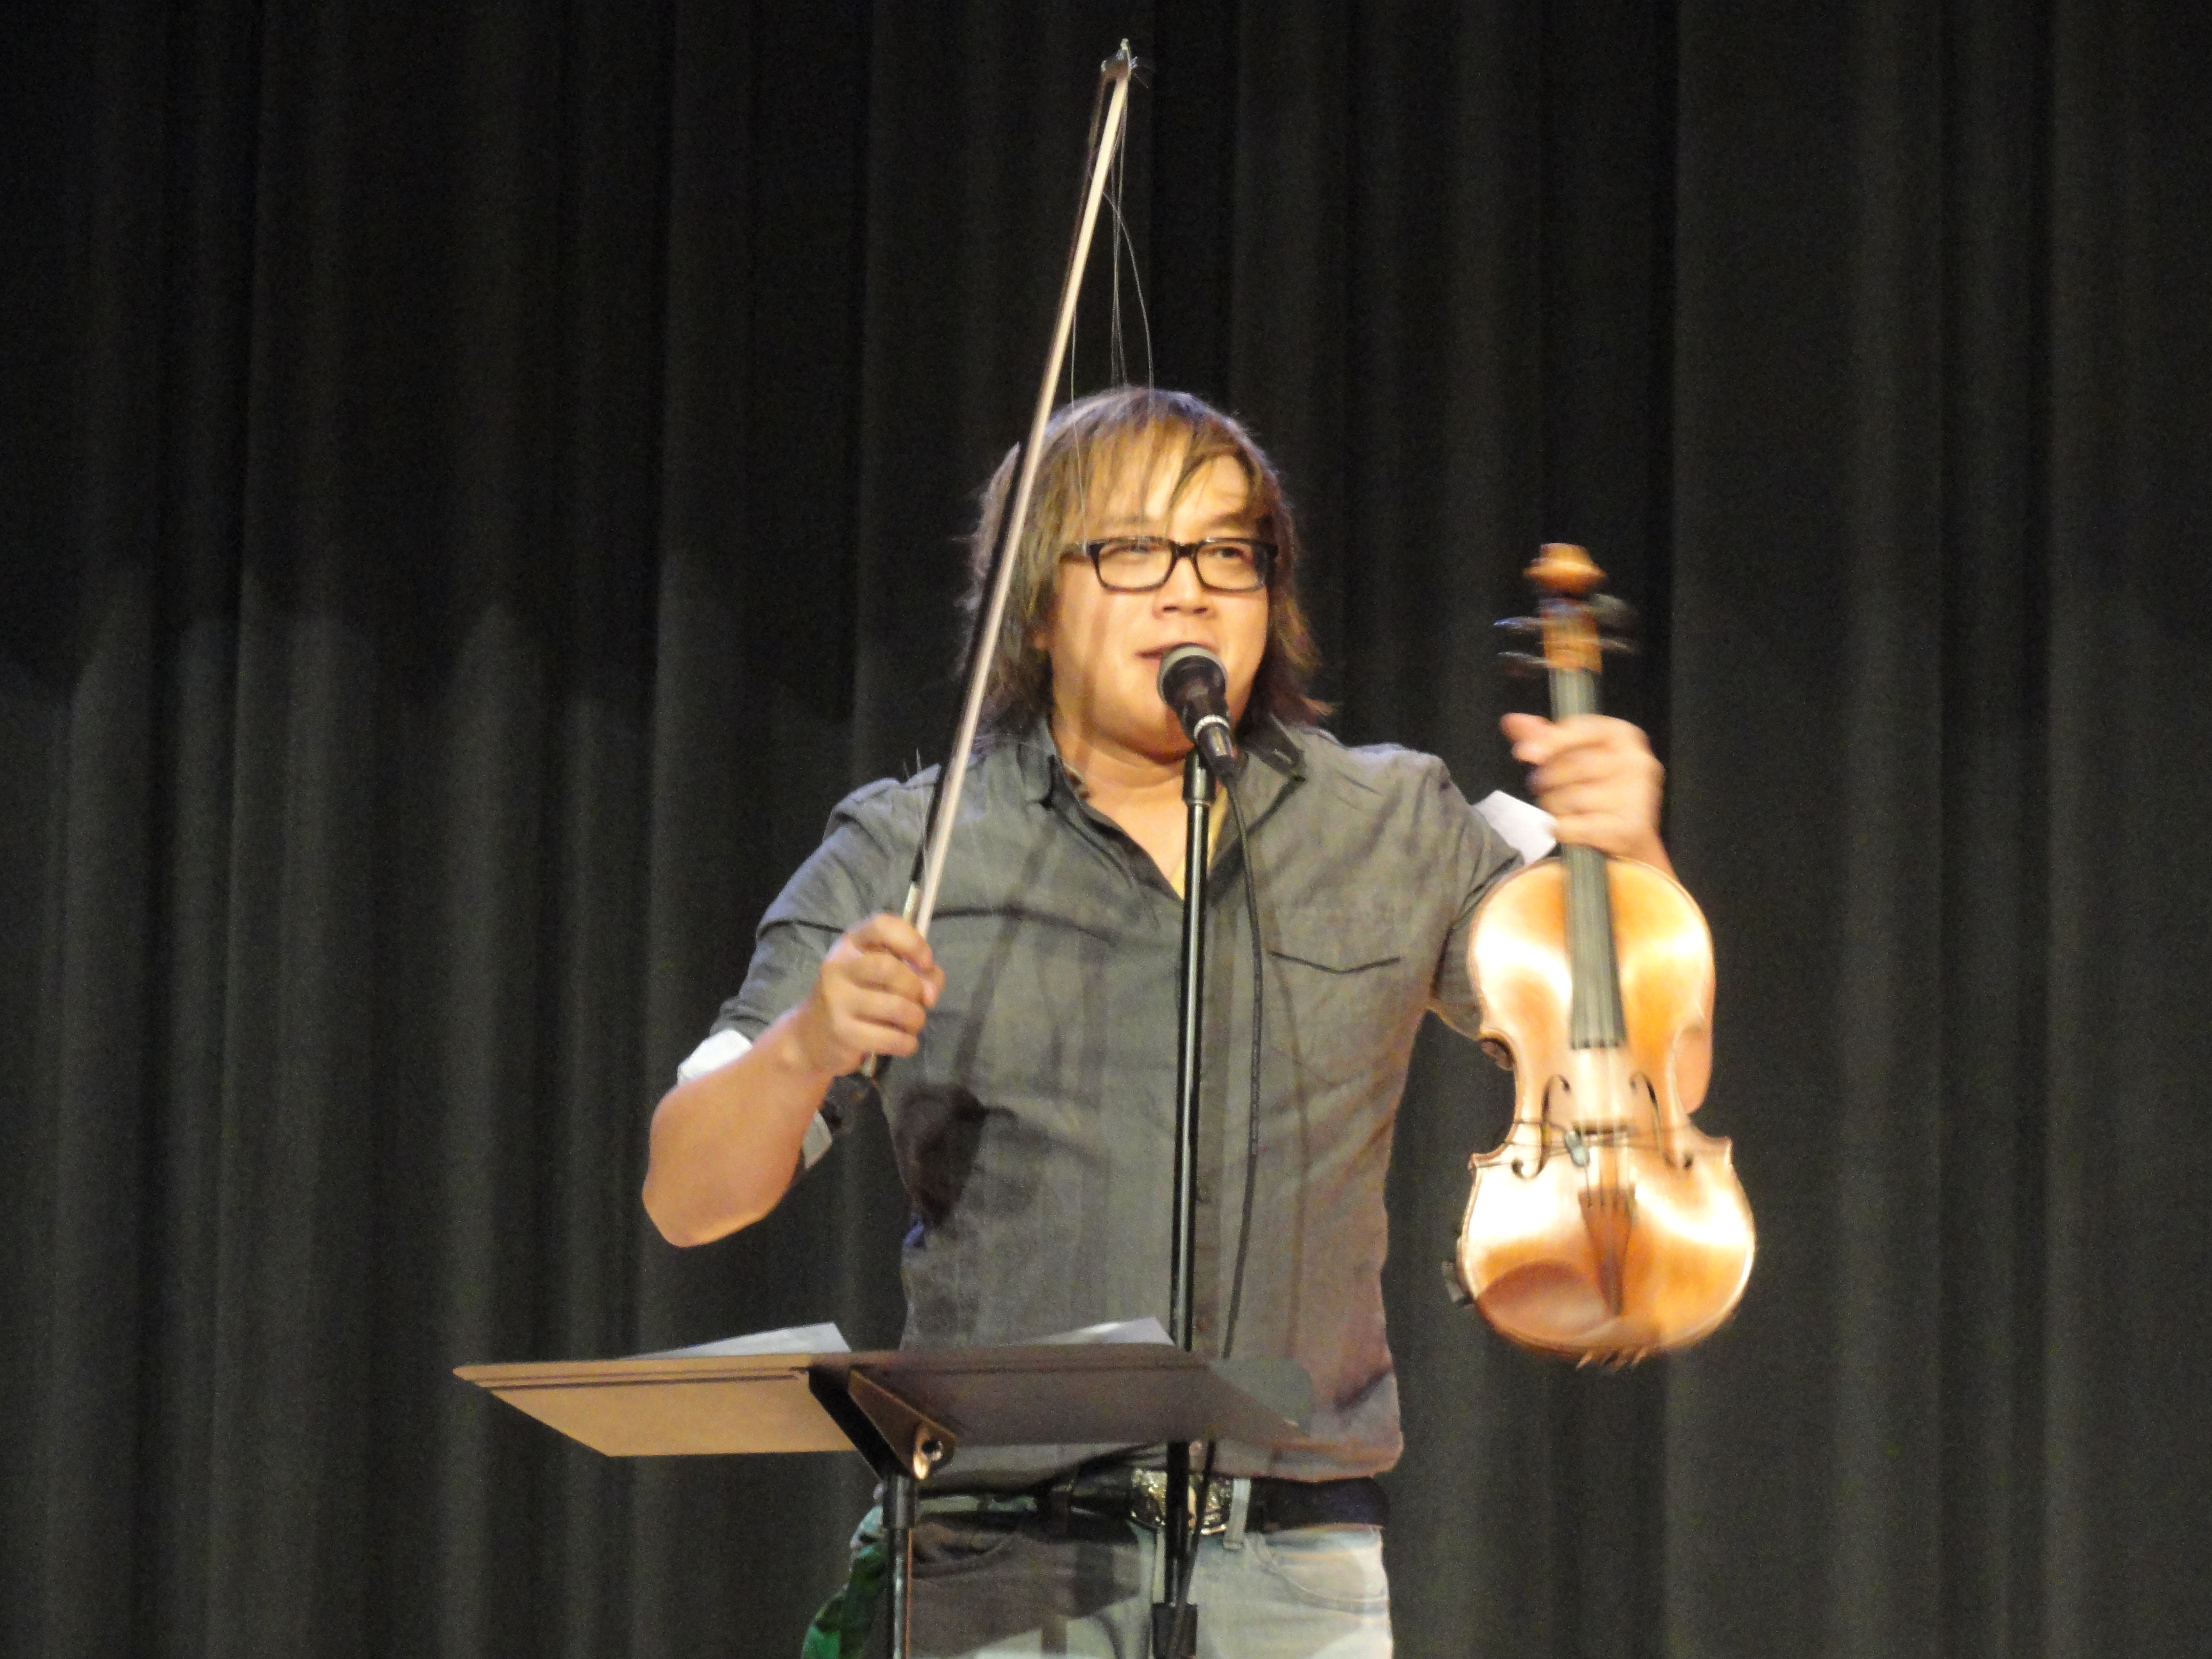 NBHS Students, Rock Violinist Make Music Together | New